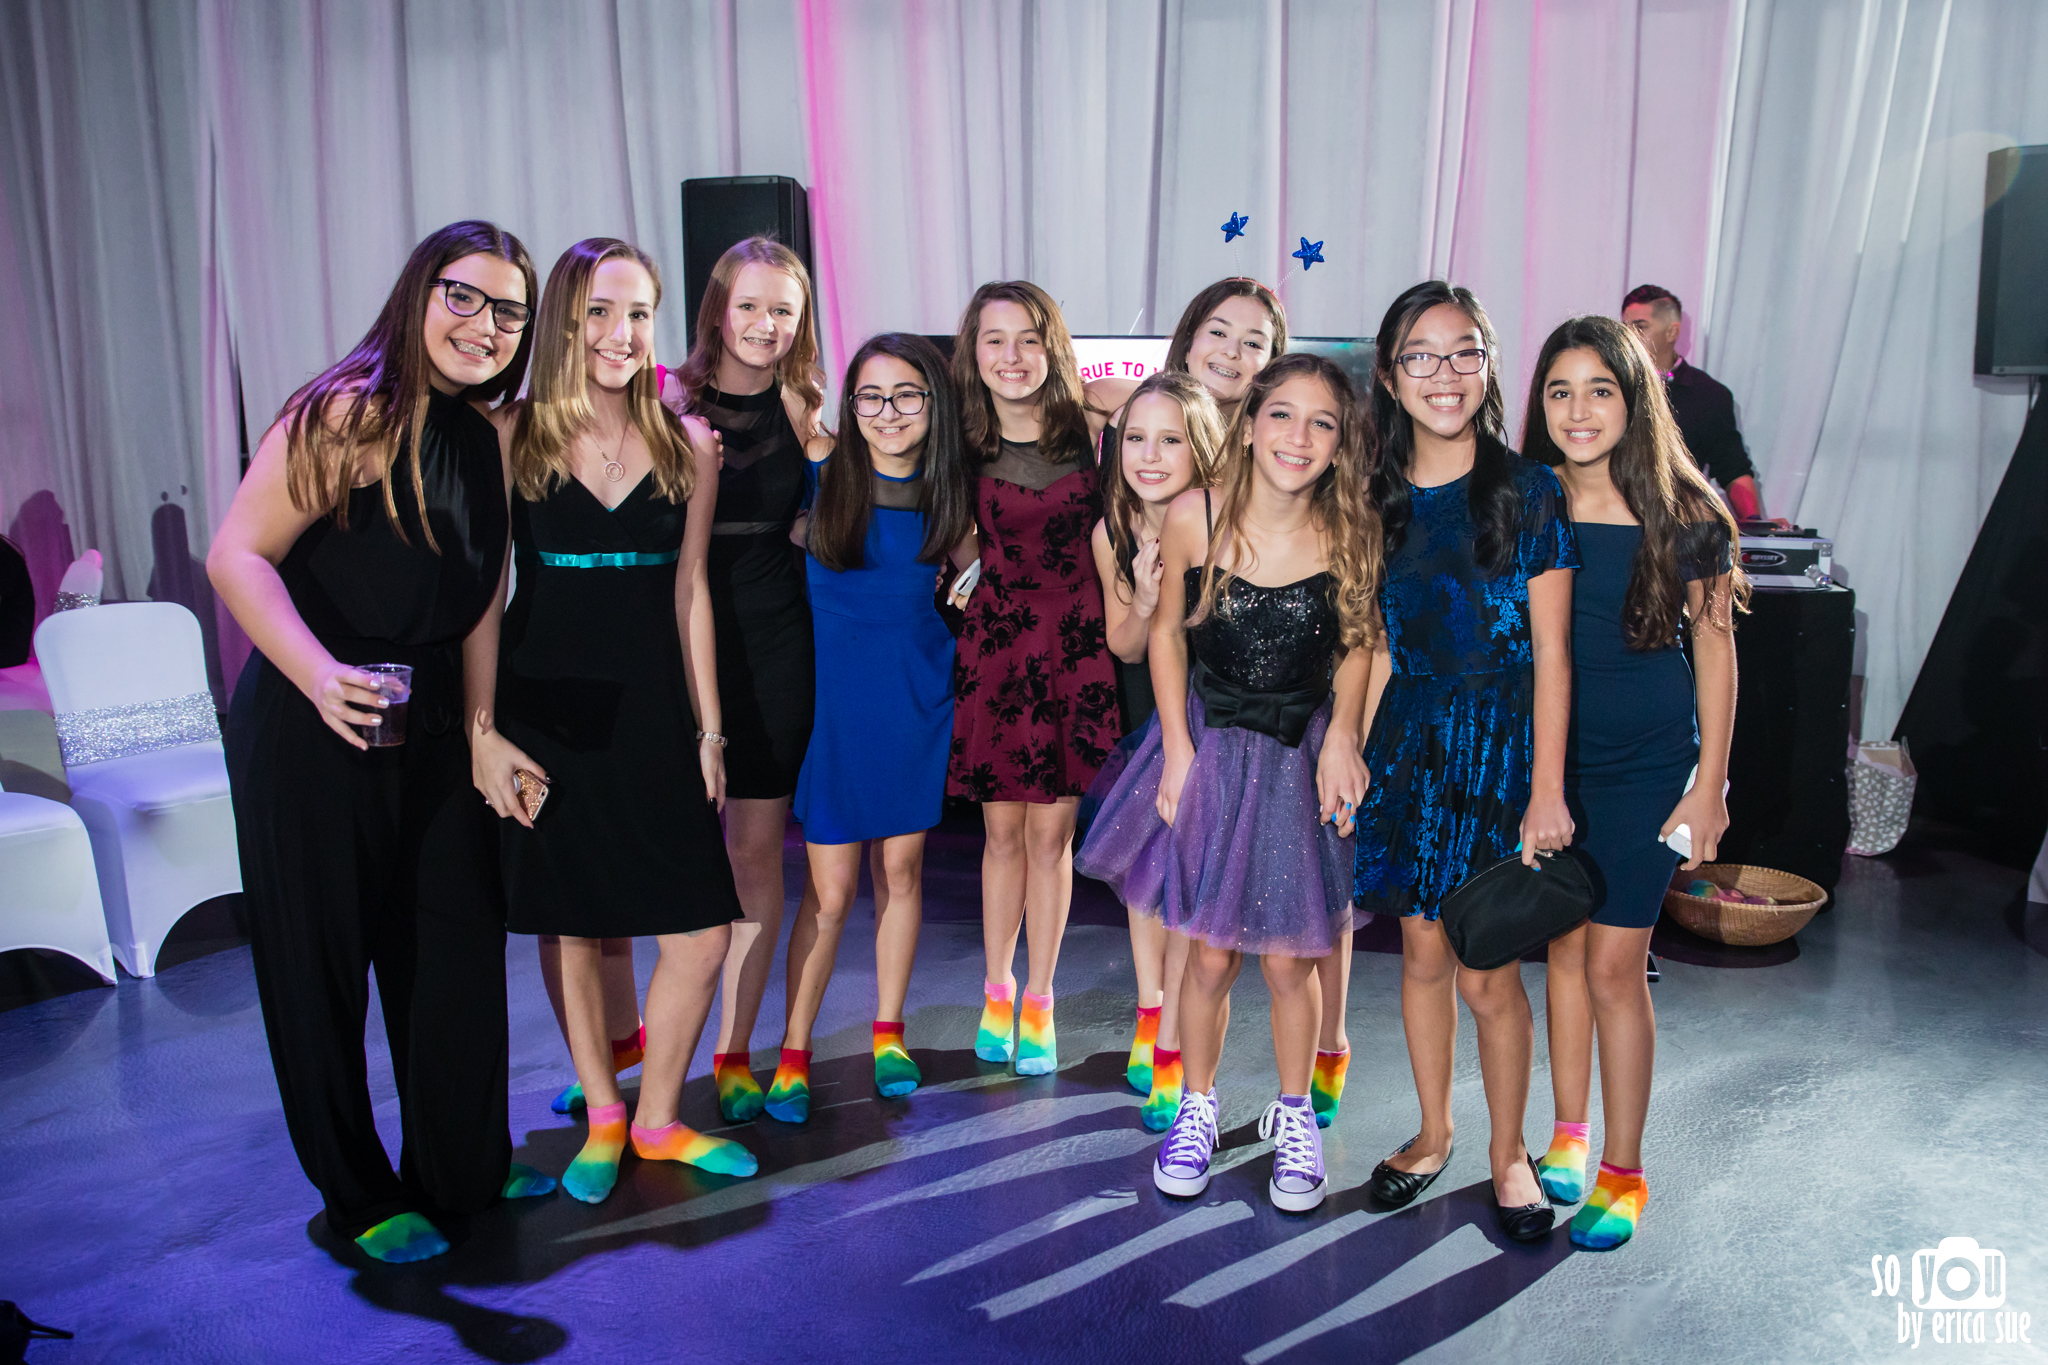 boca-fl-mitzvah-photography-so-you-by-erica-sue-3104.jpg